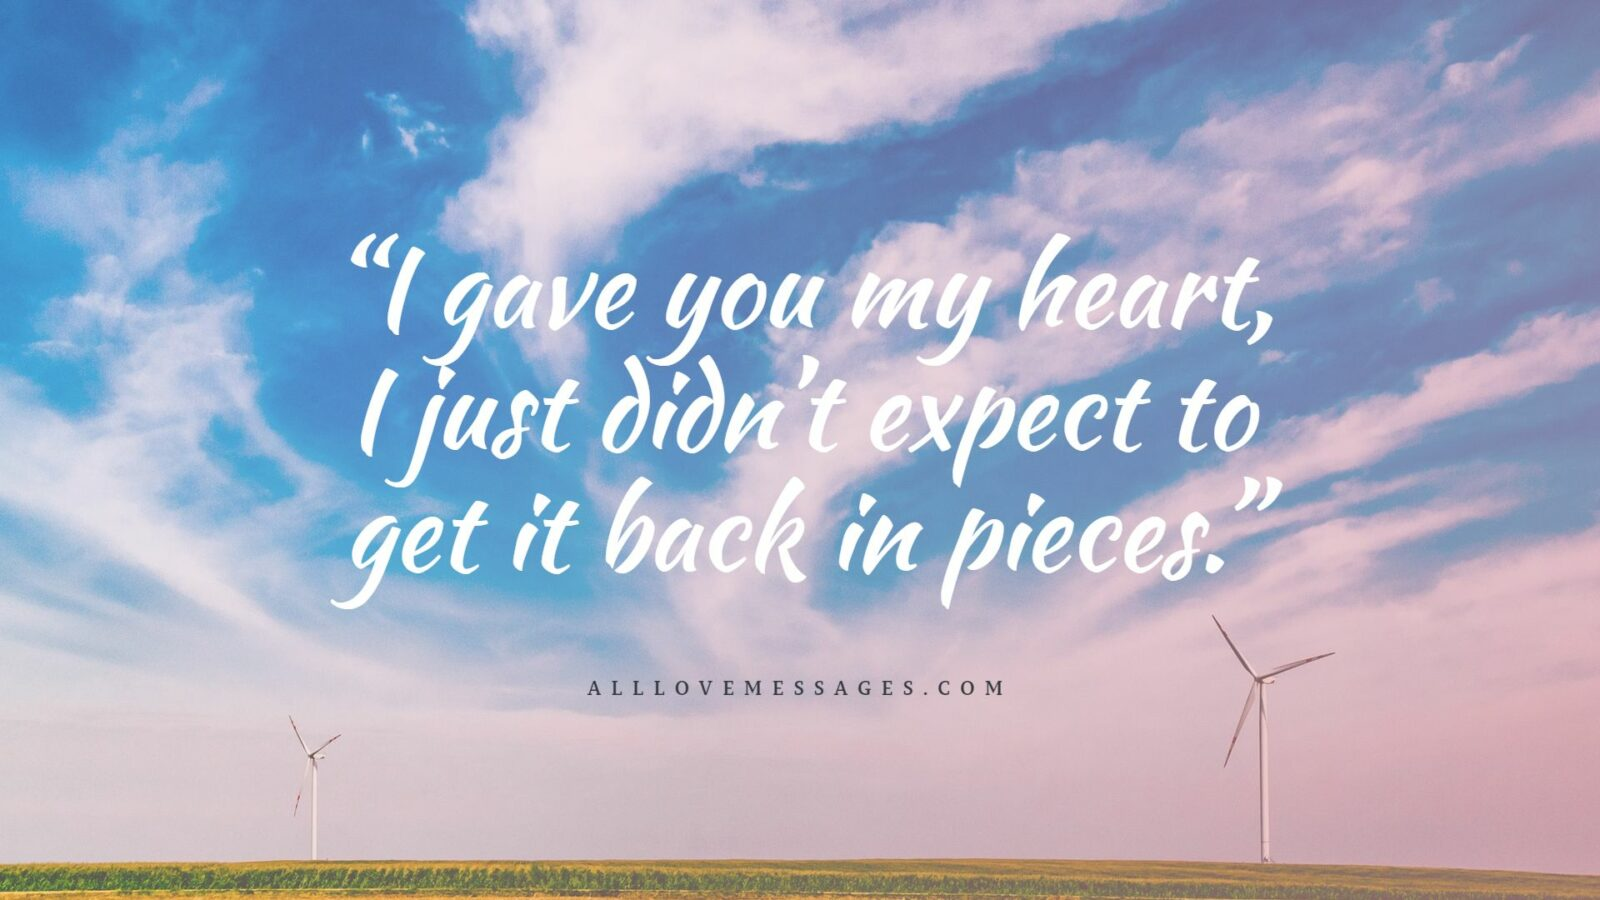 91 Healing Broken Heart Quotes & Sayings with Pictures